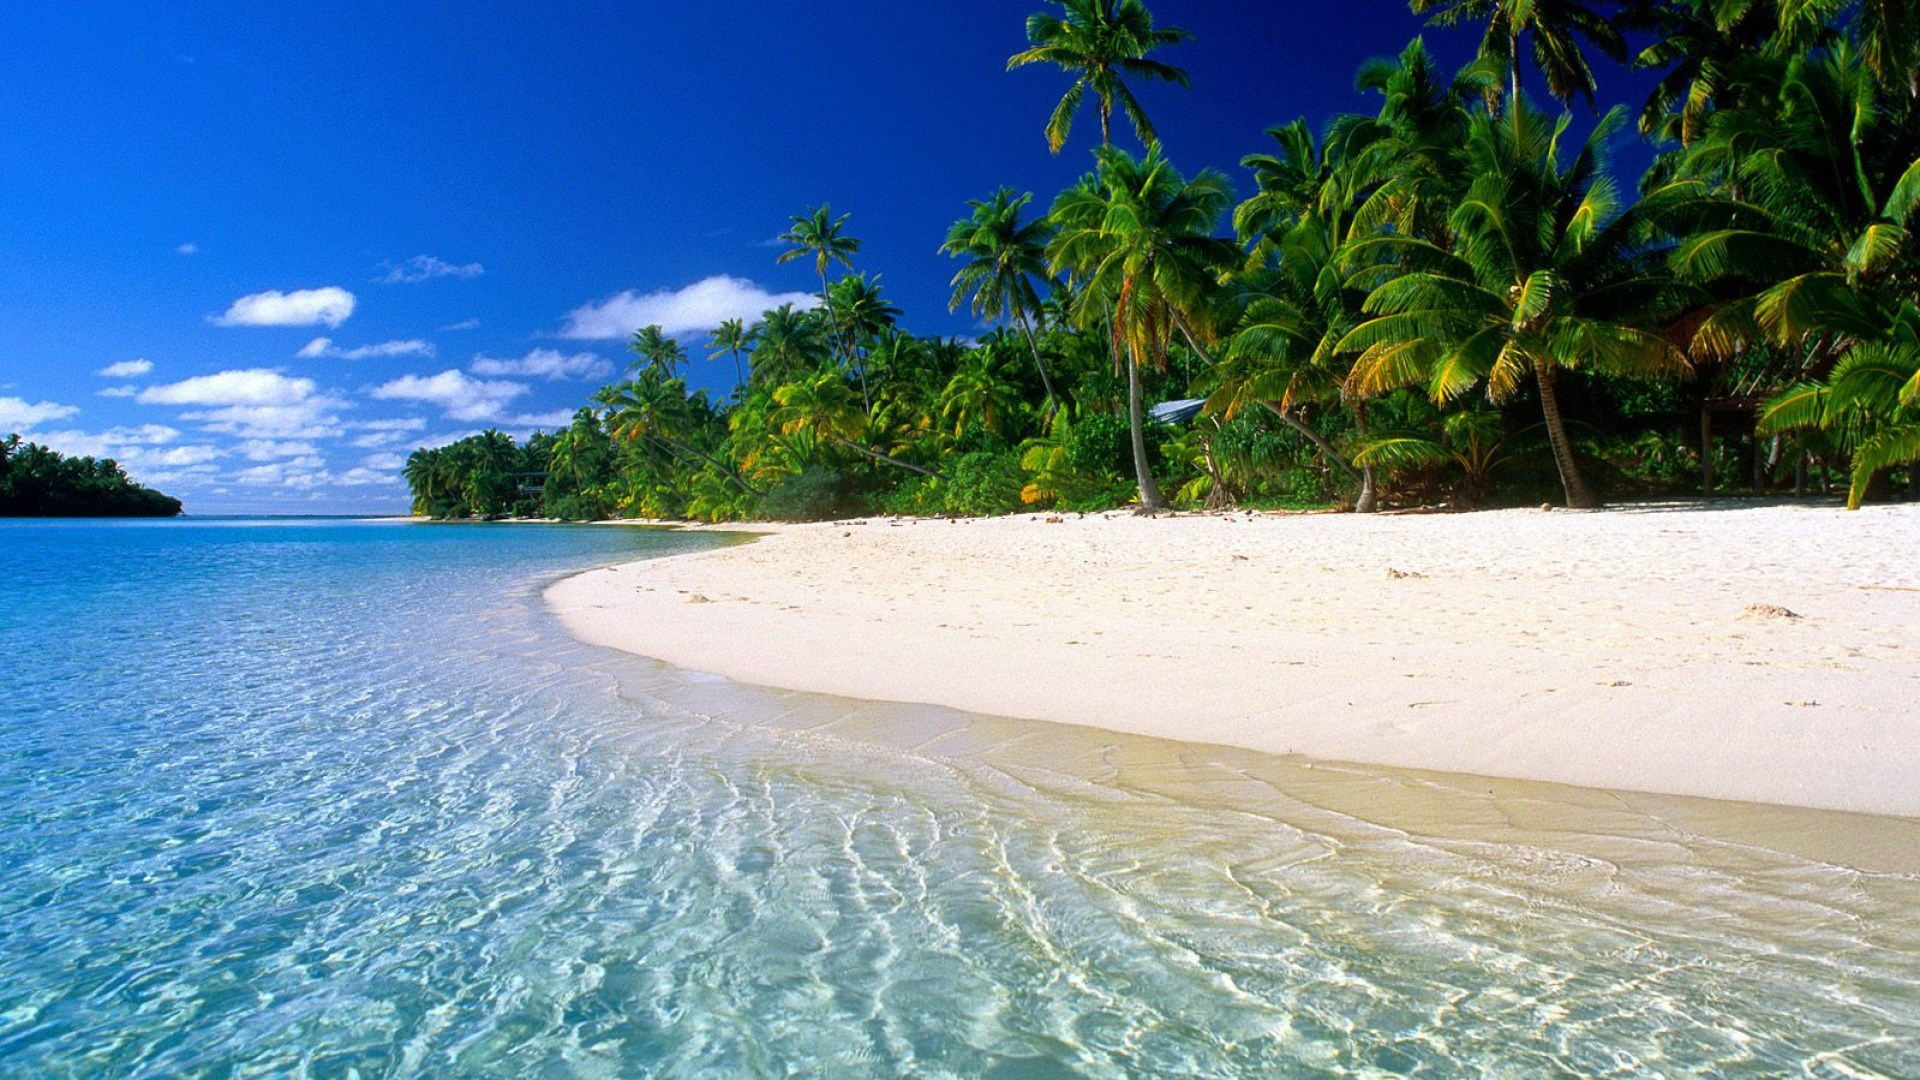 beach-free-hd-widescreen-1920x1080-wallpaper-wp3402953